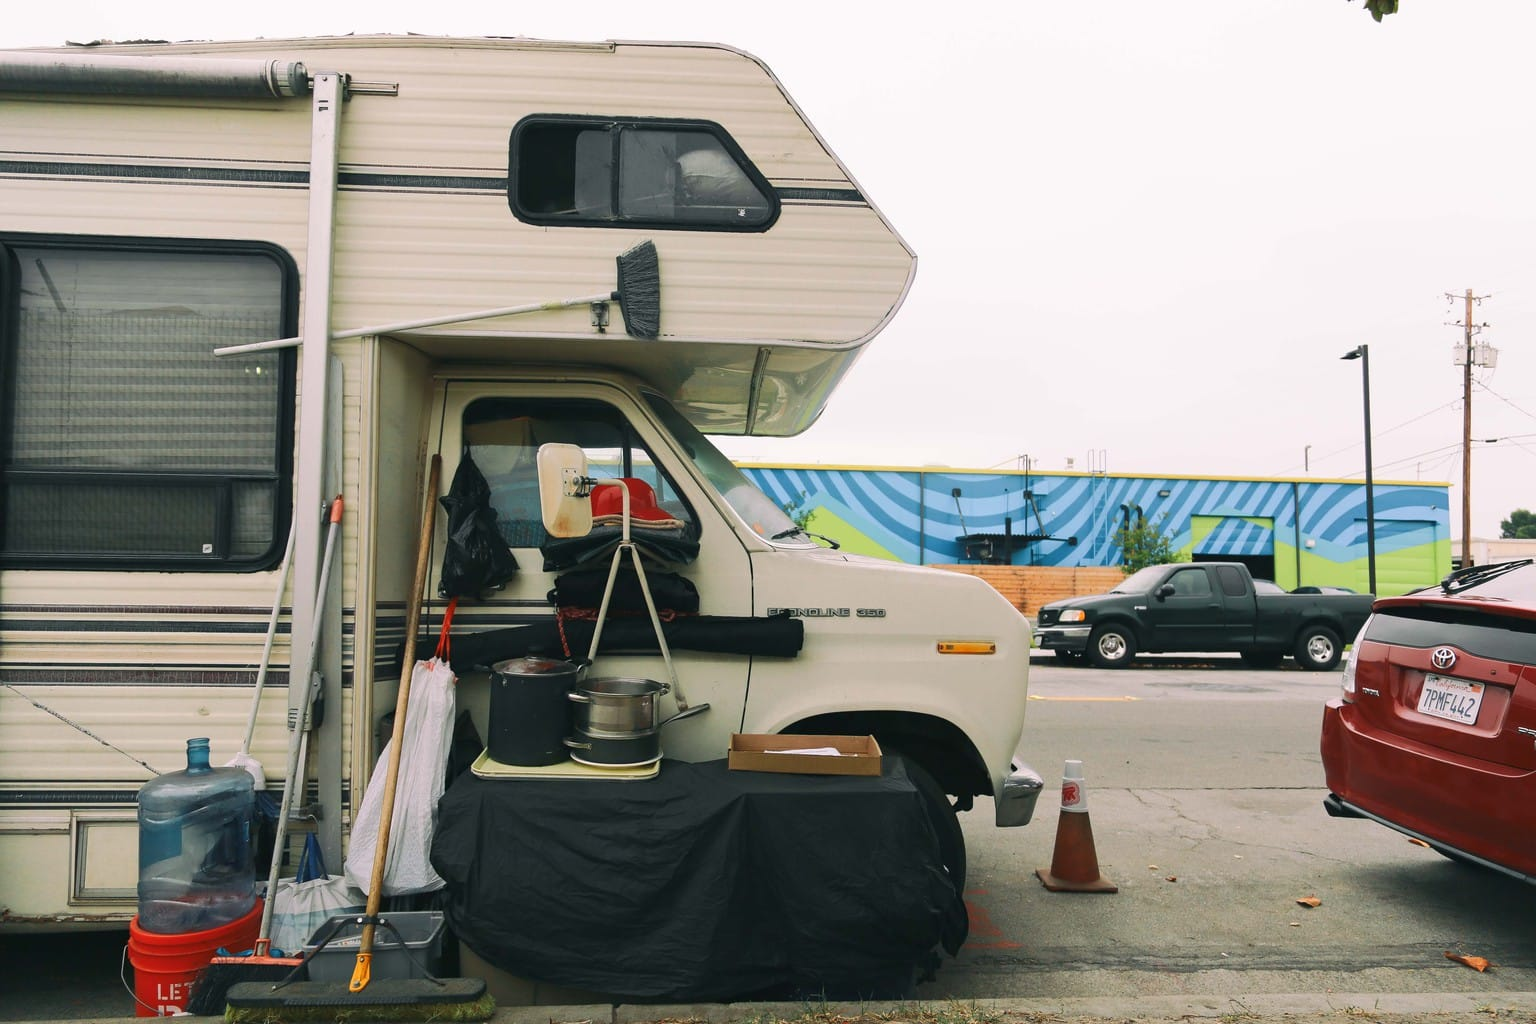 Anaheim S New Oversized Vehicle Parking Ban Leaves Rv